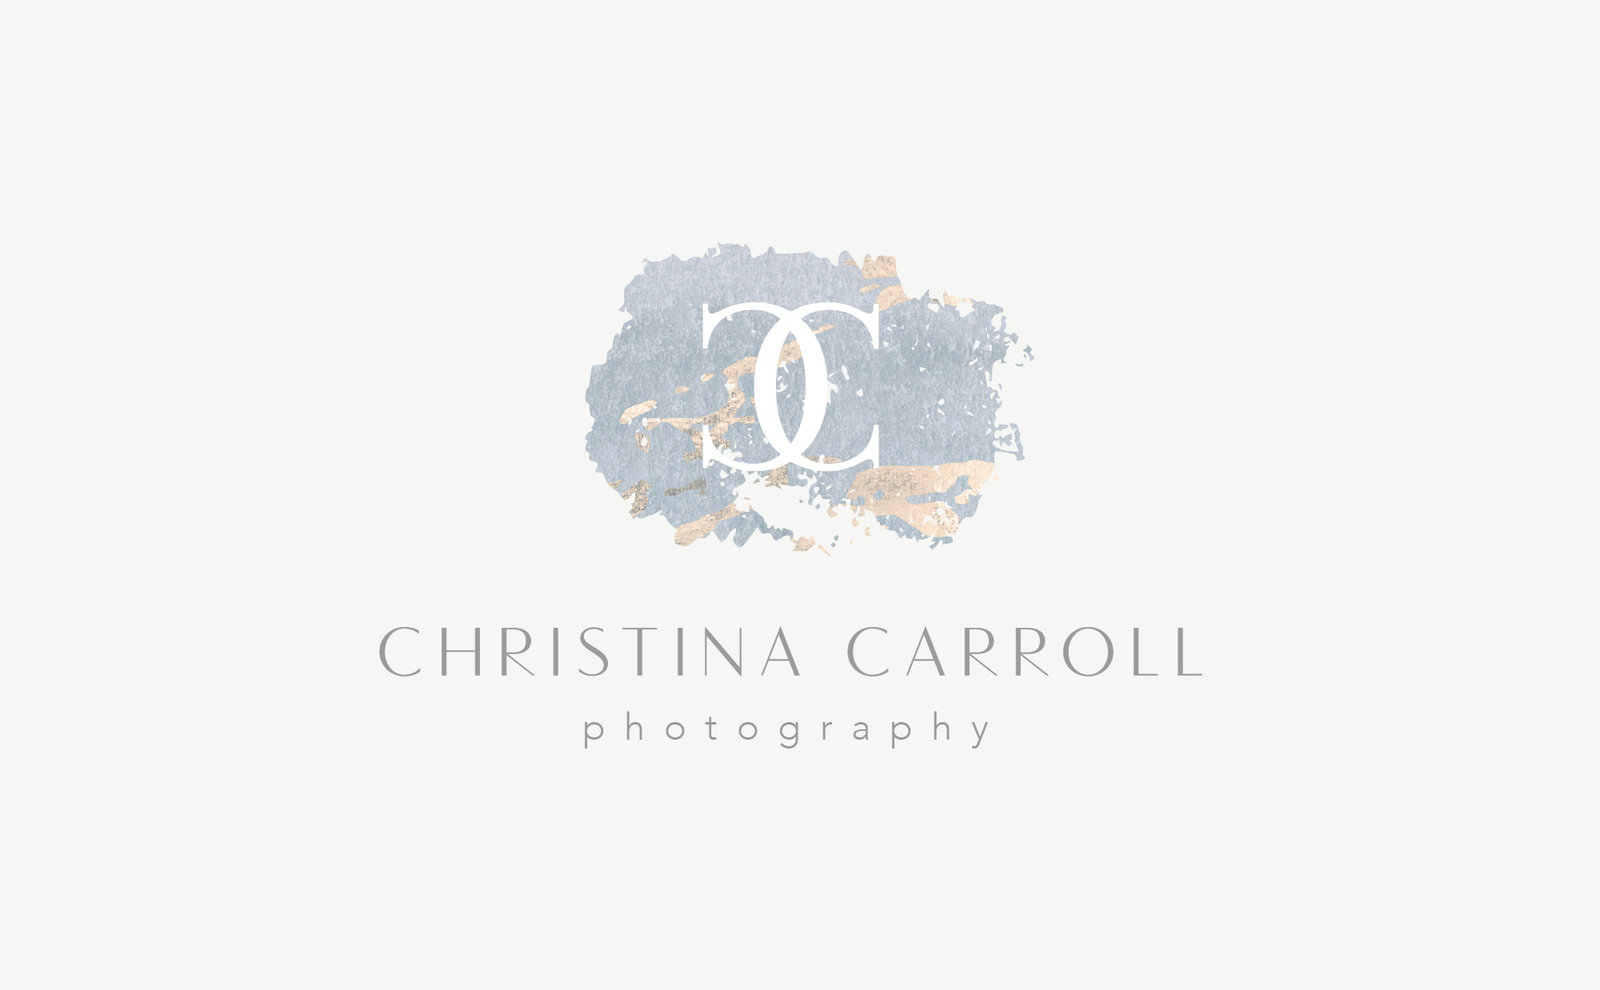 branding-for-photographers-logo-christina-carroll